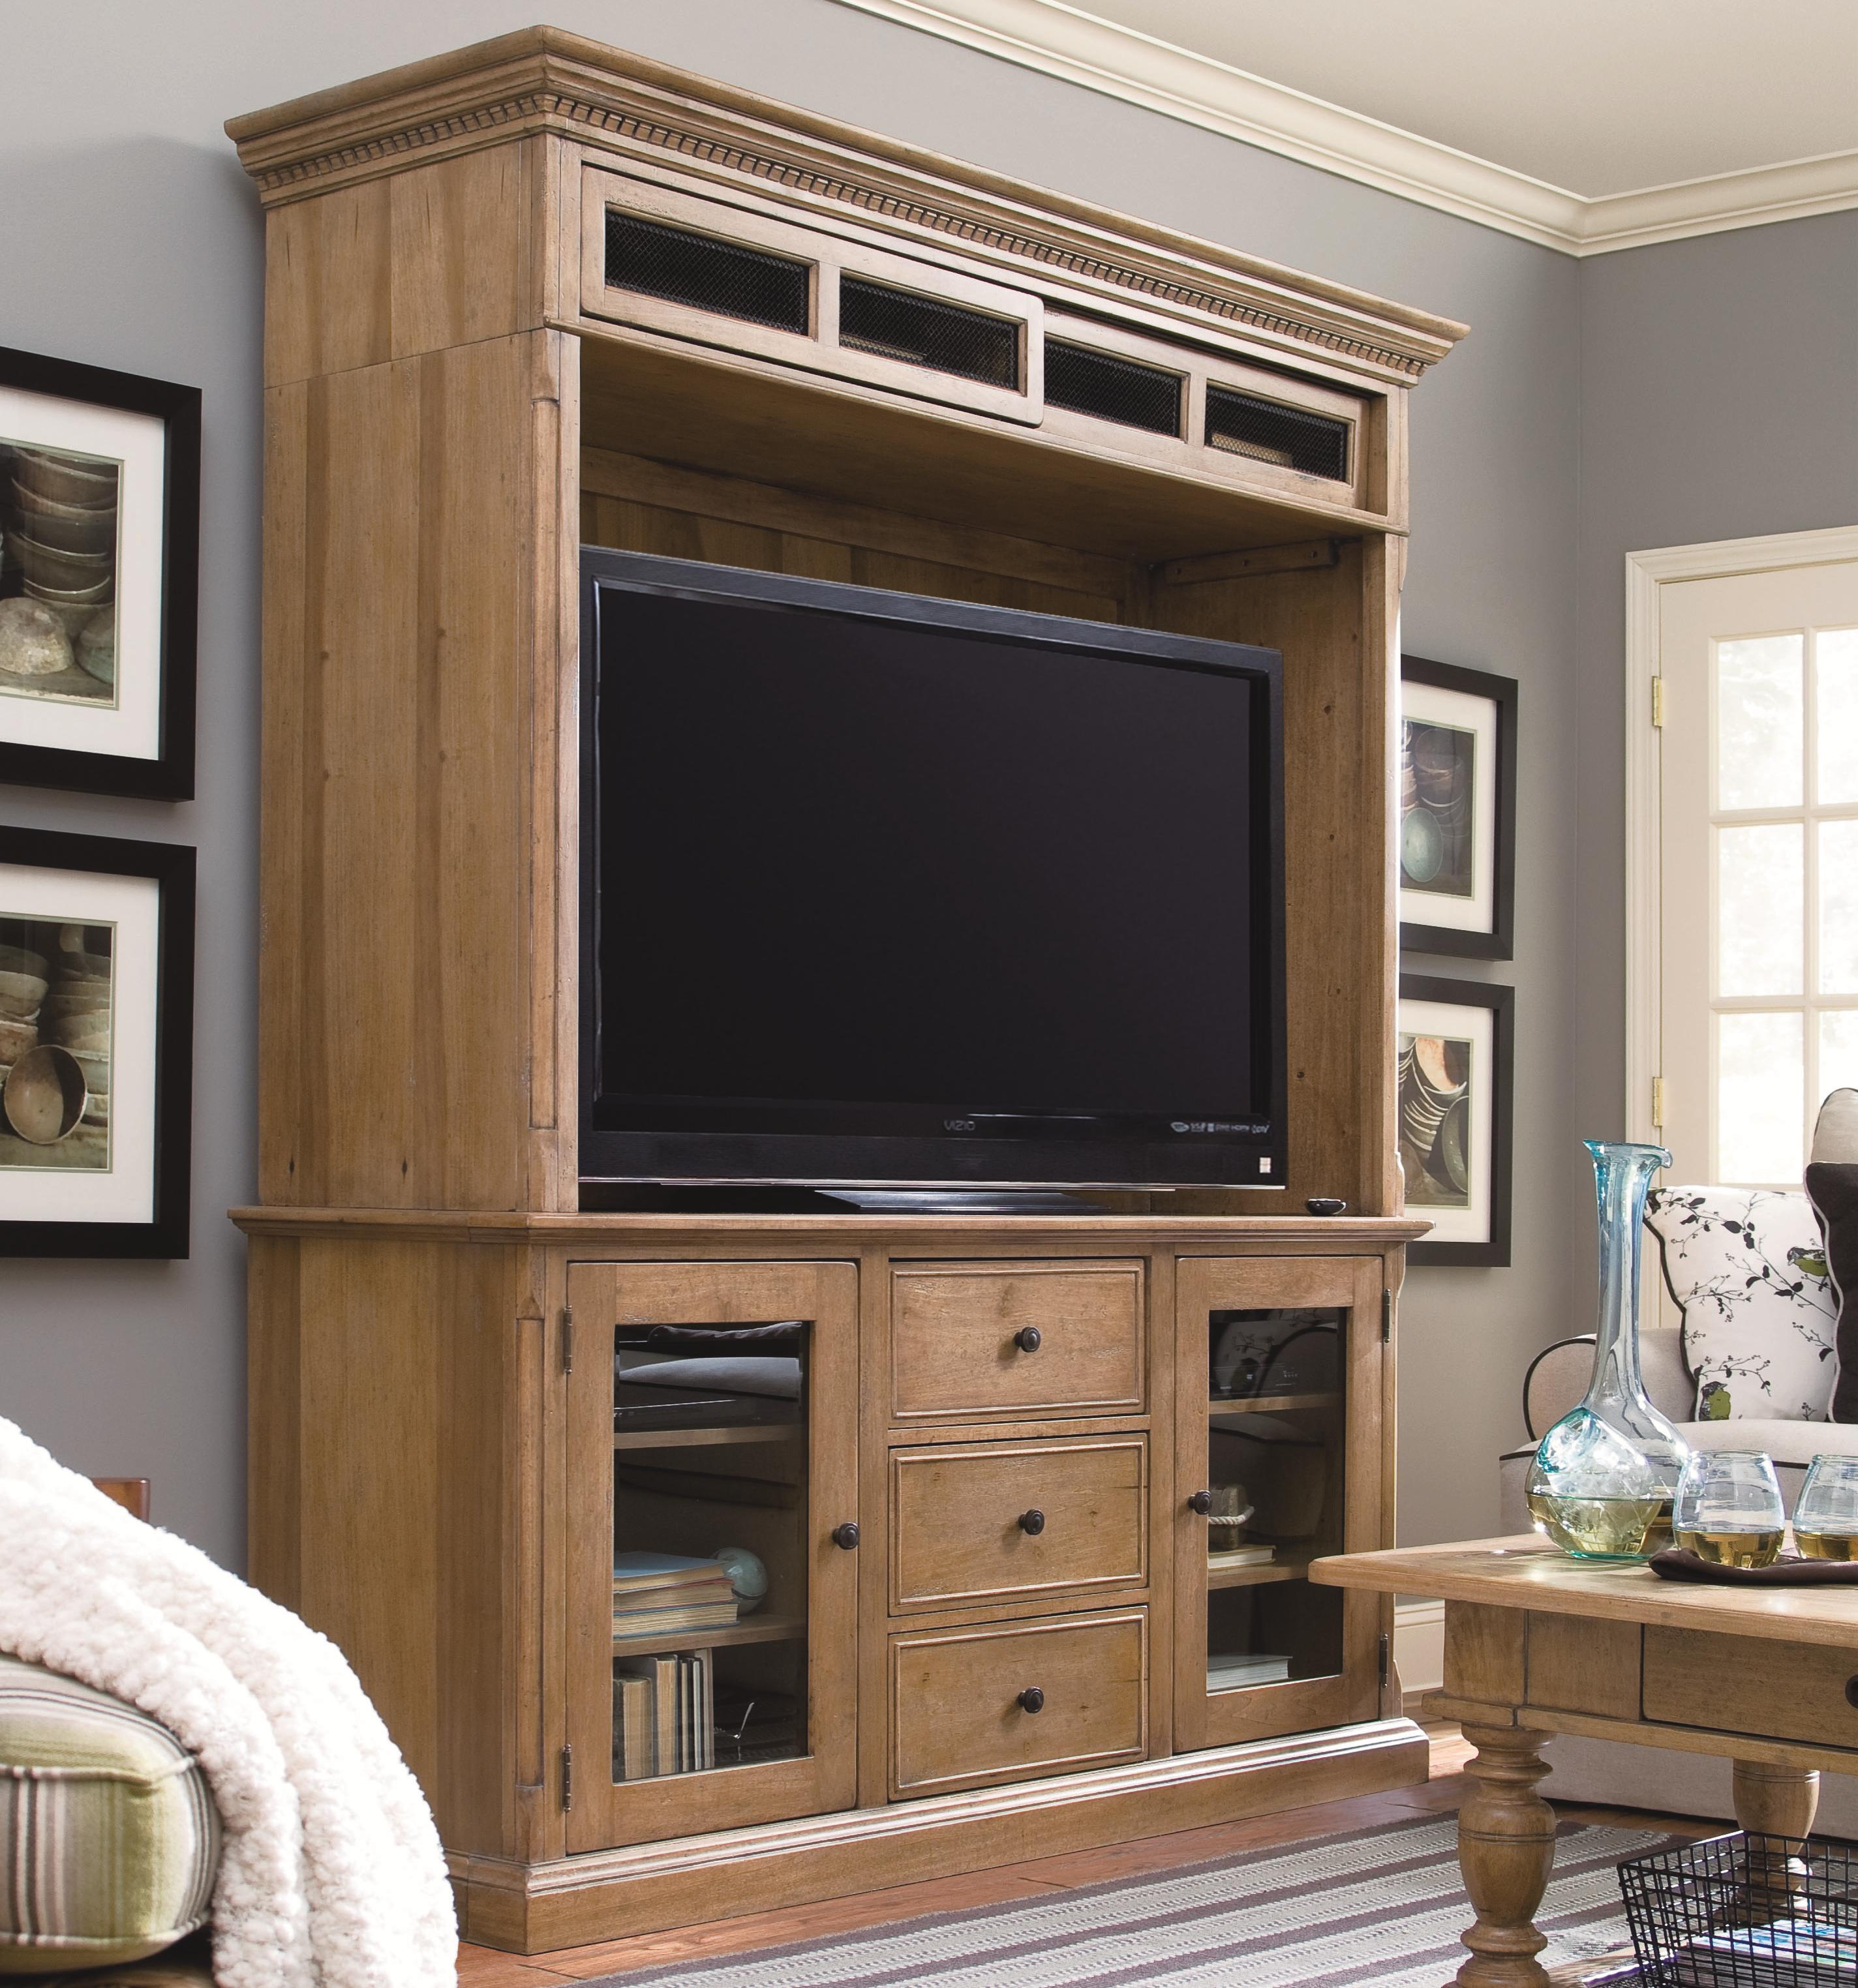 Paula Deen by Universal Down Home Entertainment Console and Bridge - Item Number: 192966+965